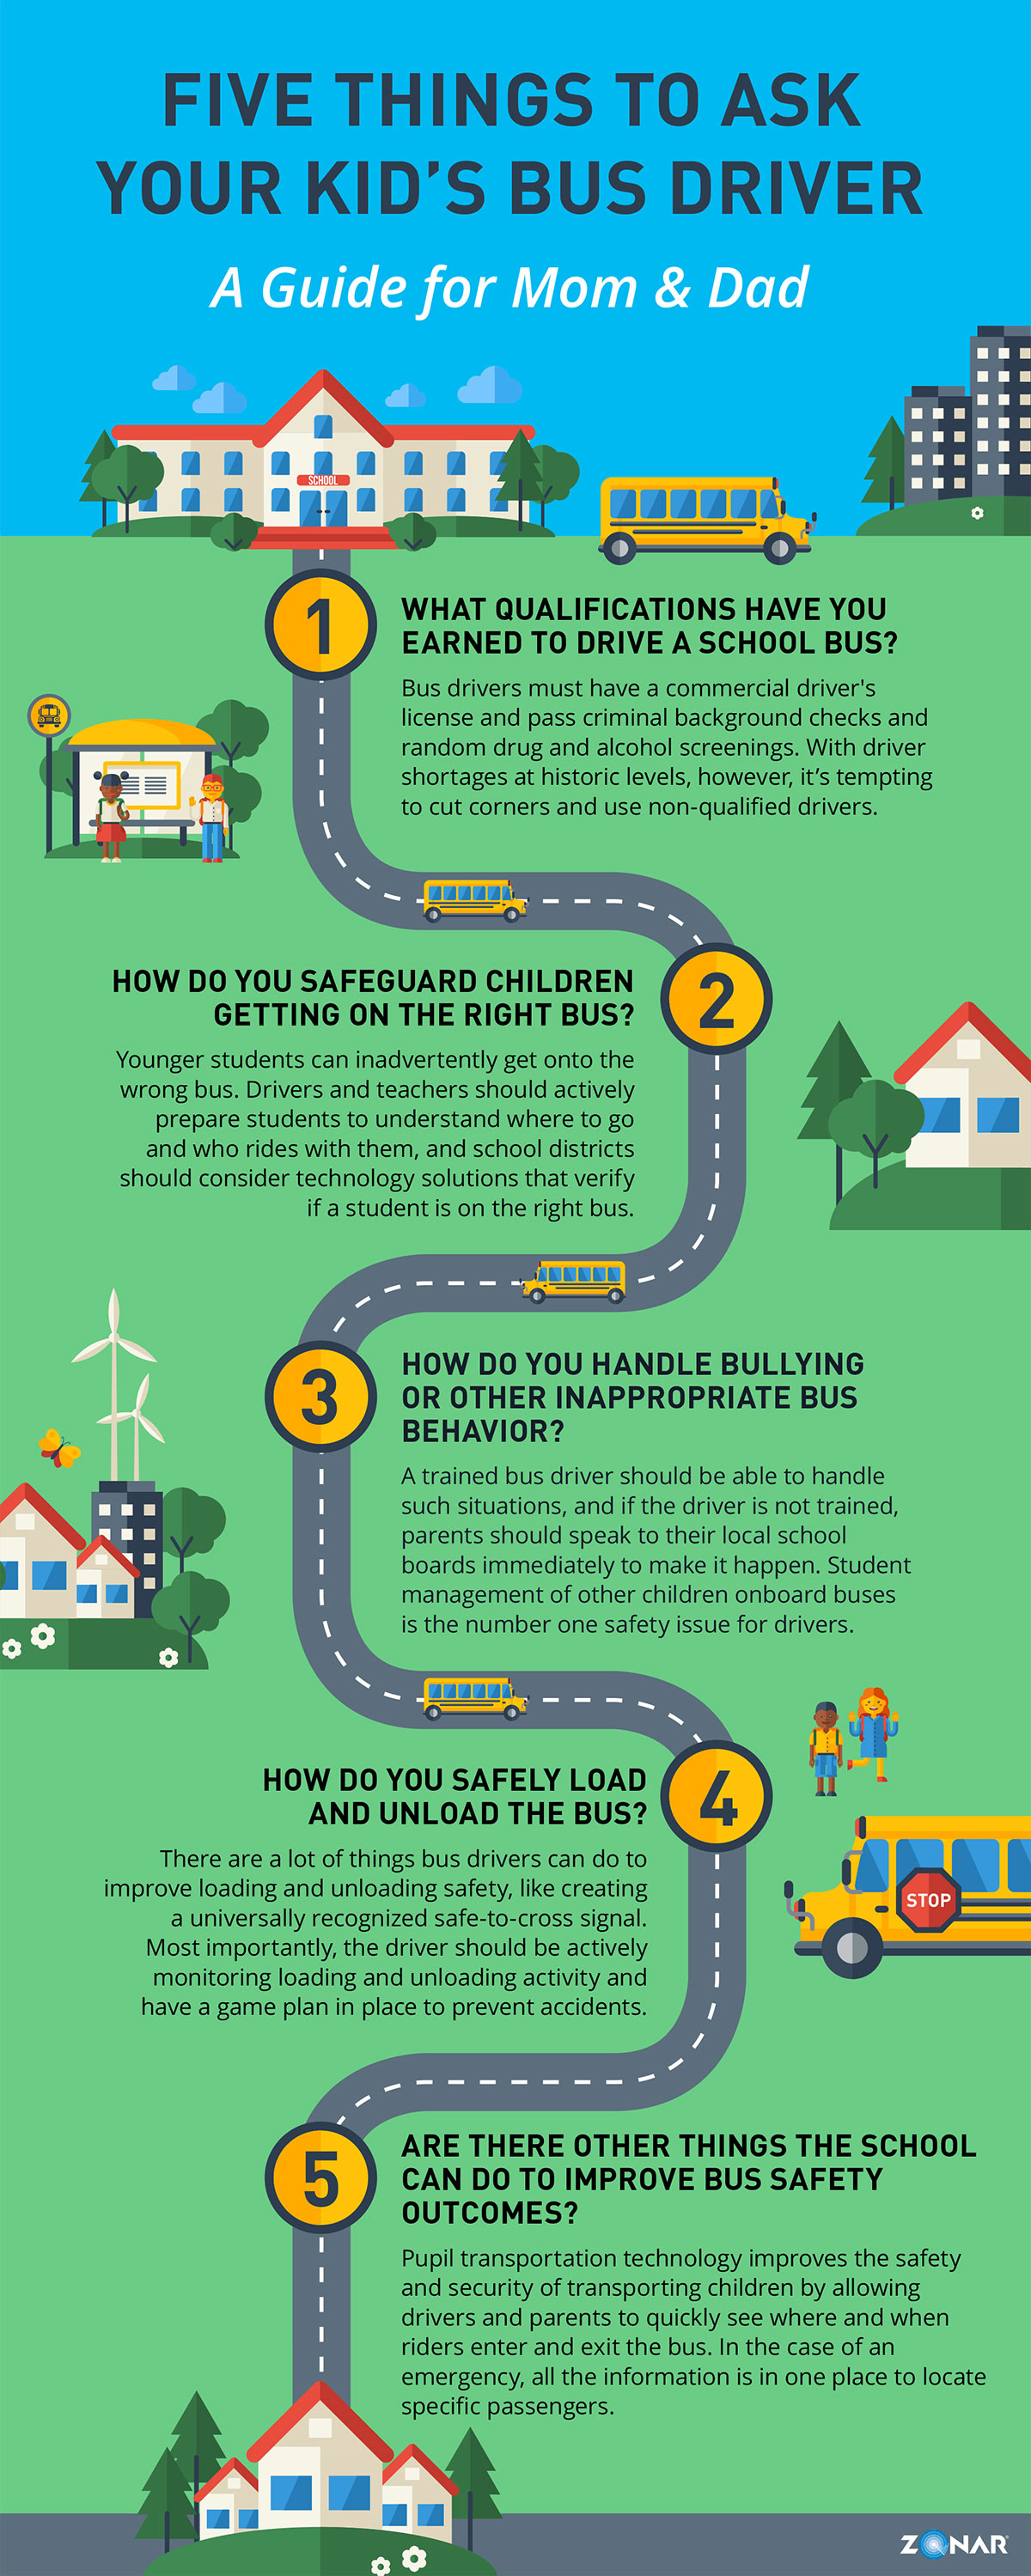 Infographic: 5 Things to Ask Your Kid's School Bus Driver